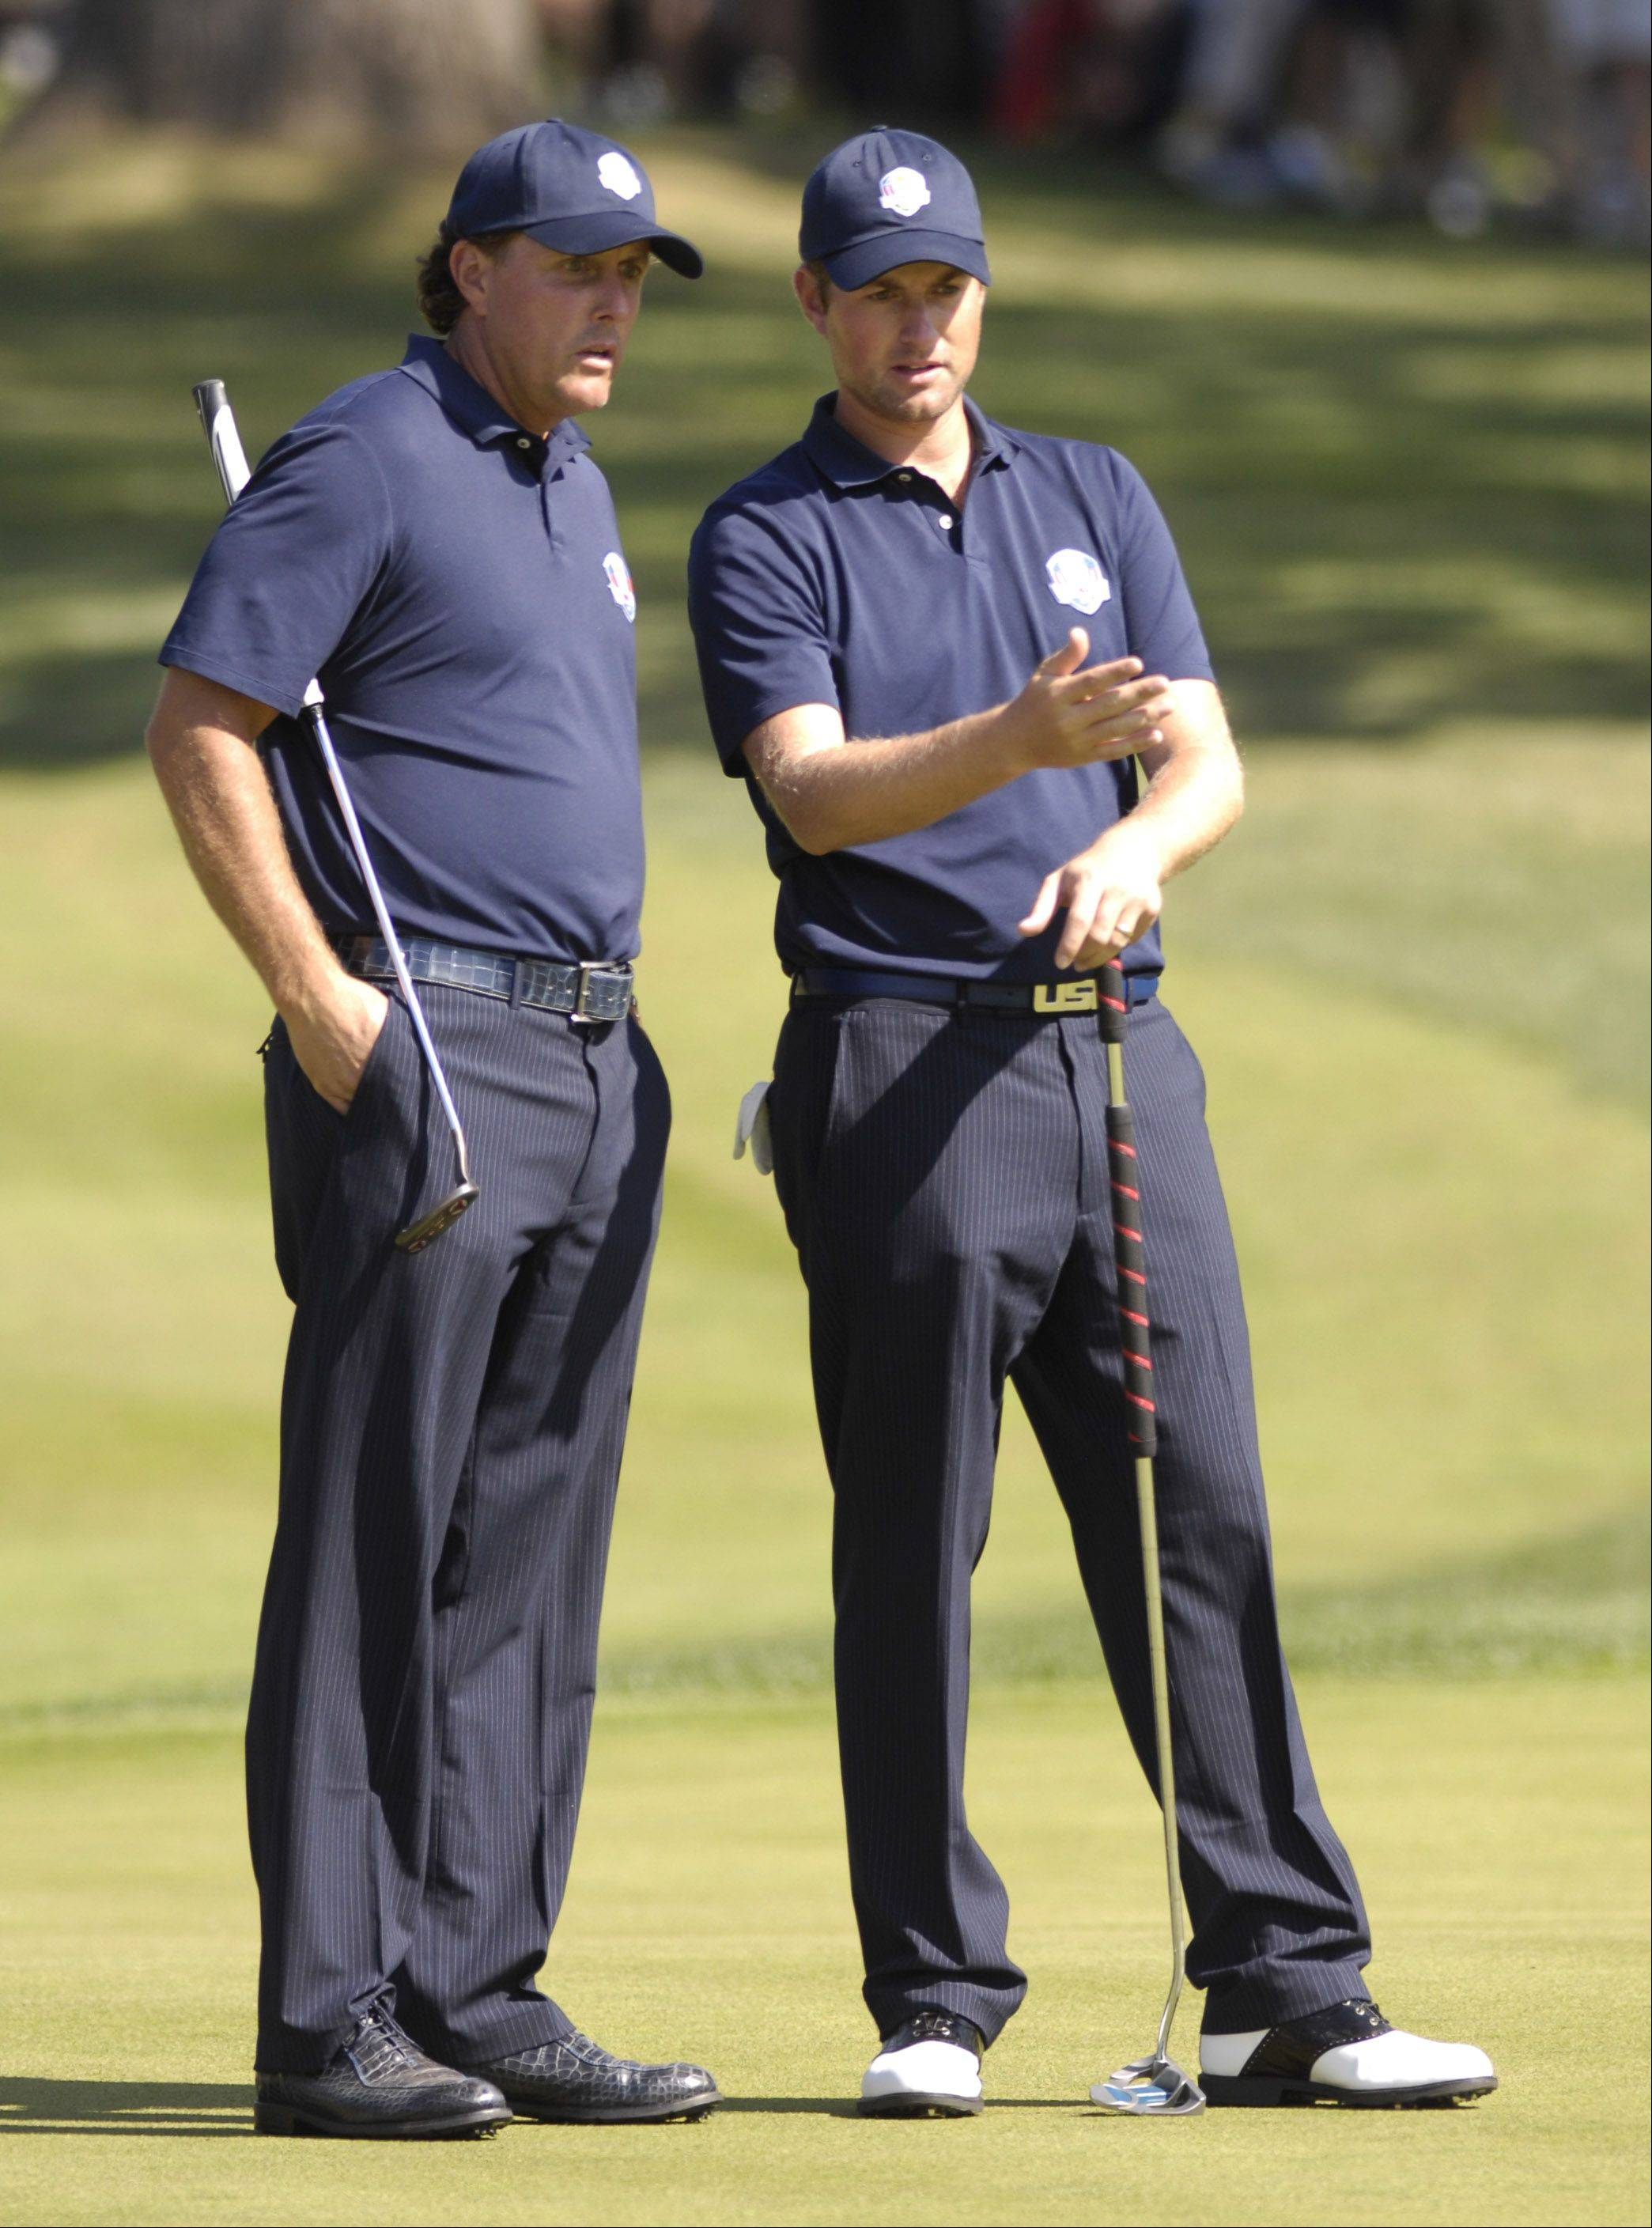 Team USA veteran Phil Mickelson, here talking with Webb Simpson at right, will set a record with his ninth Ryder Cup appearance this weekend. Having played every Ryder Cup since 1995, Mickelson owns the record for the most defeats and is 11-17-6 overall.